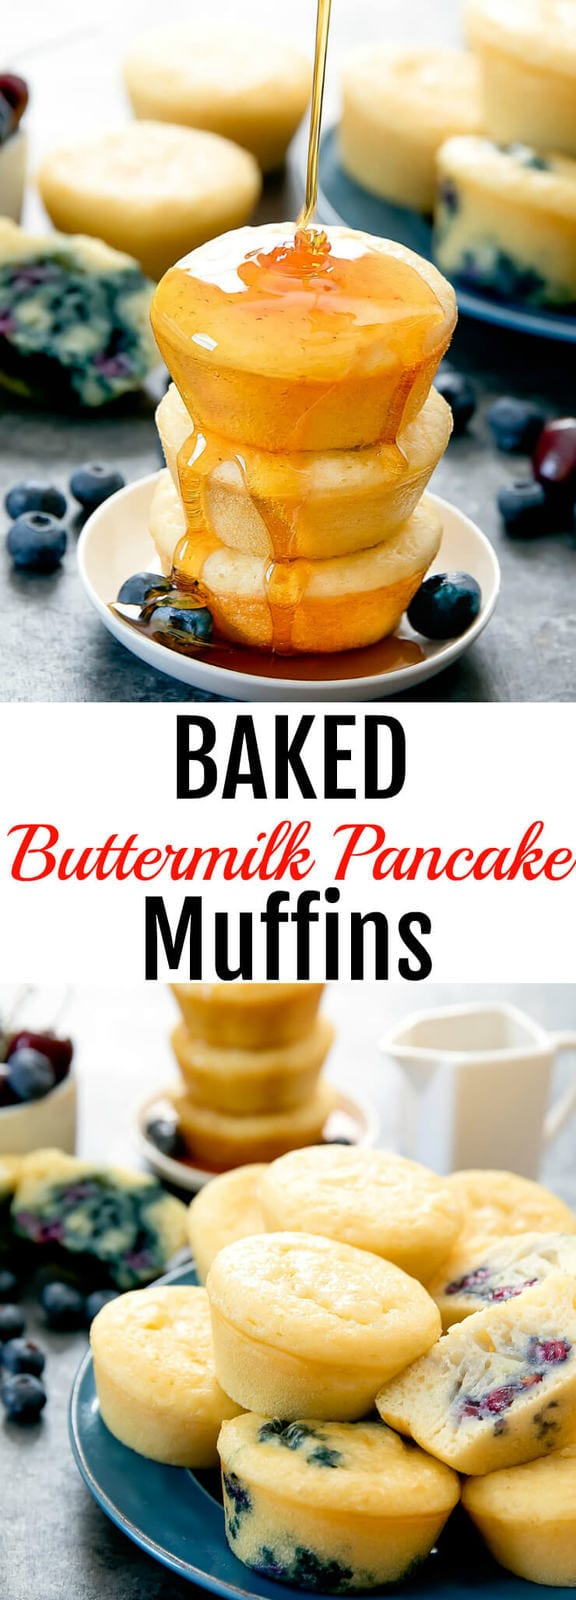 Baked Buttermilk Pancake Muffins. These easy pancakes come out so fluffy and thick! Cooking them in the oven allows you to make a large quantity all at once.